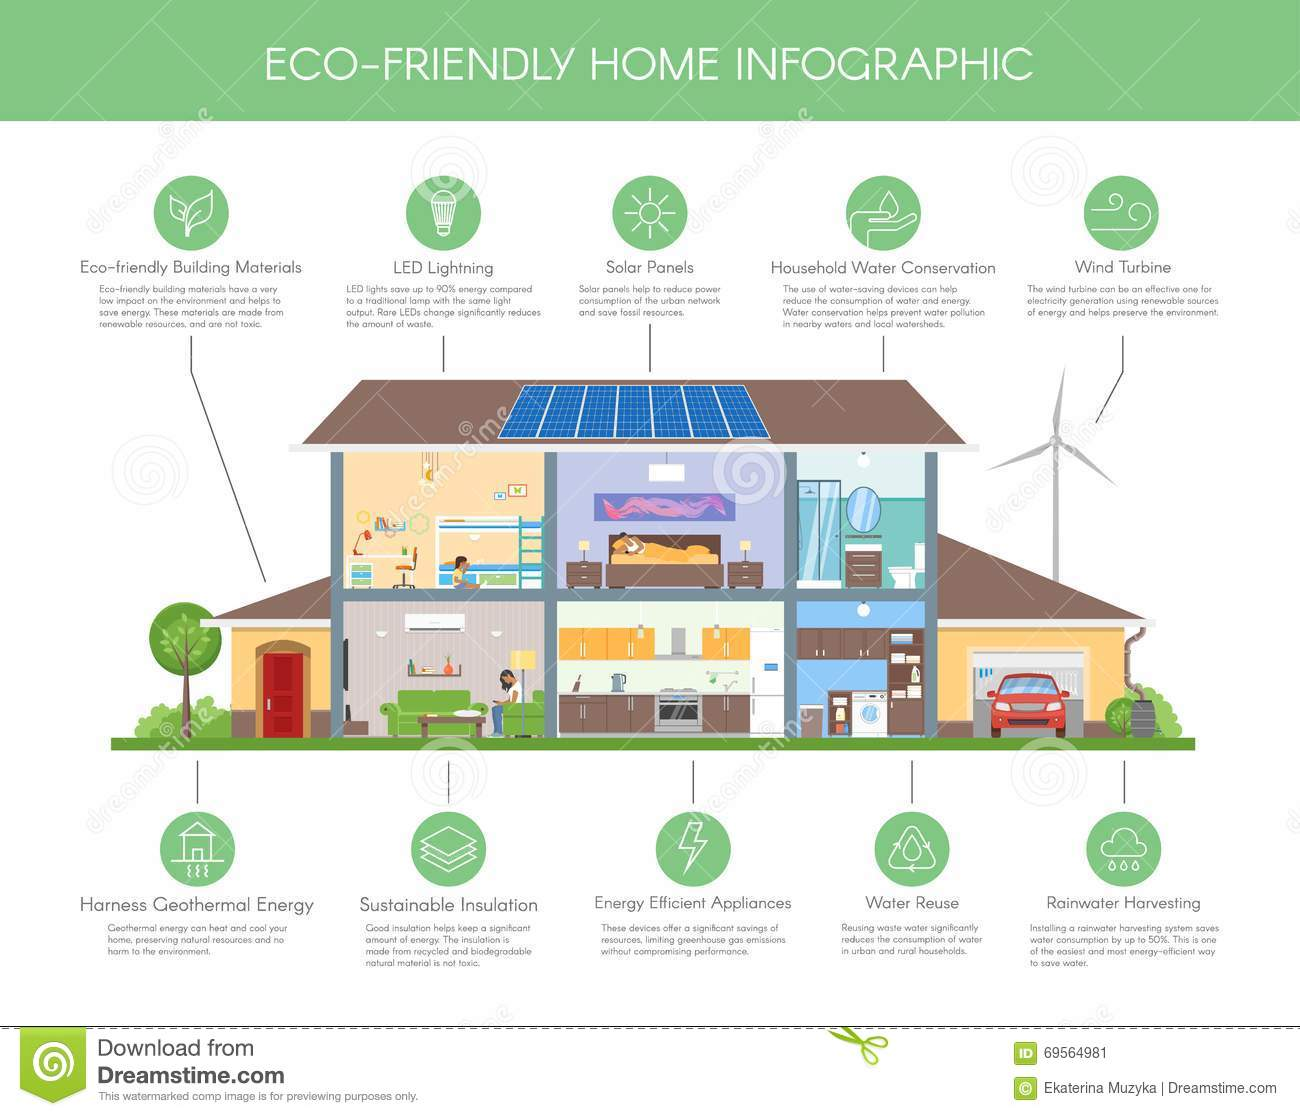 Eco-friendly Home Infographic Concept Vector Illustration